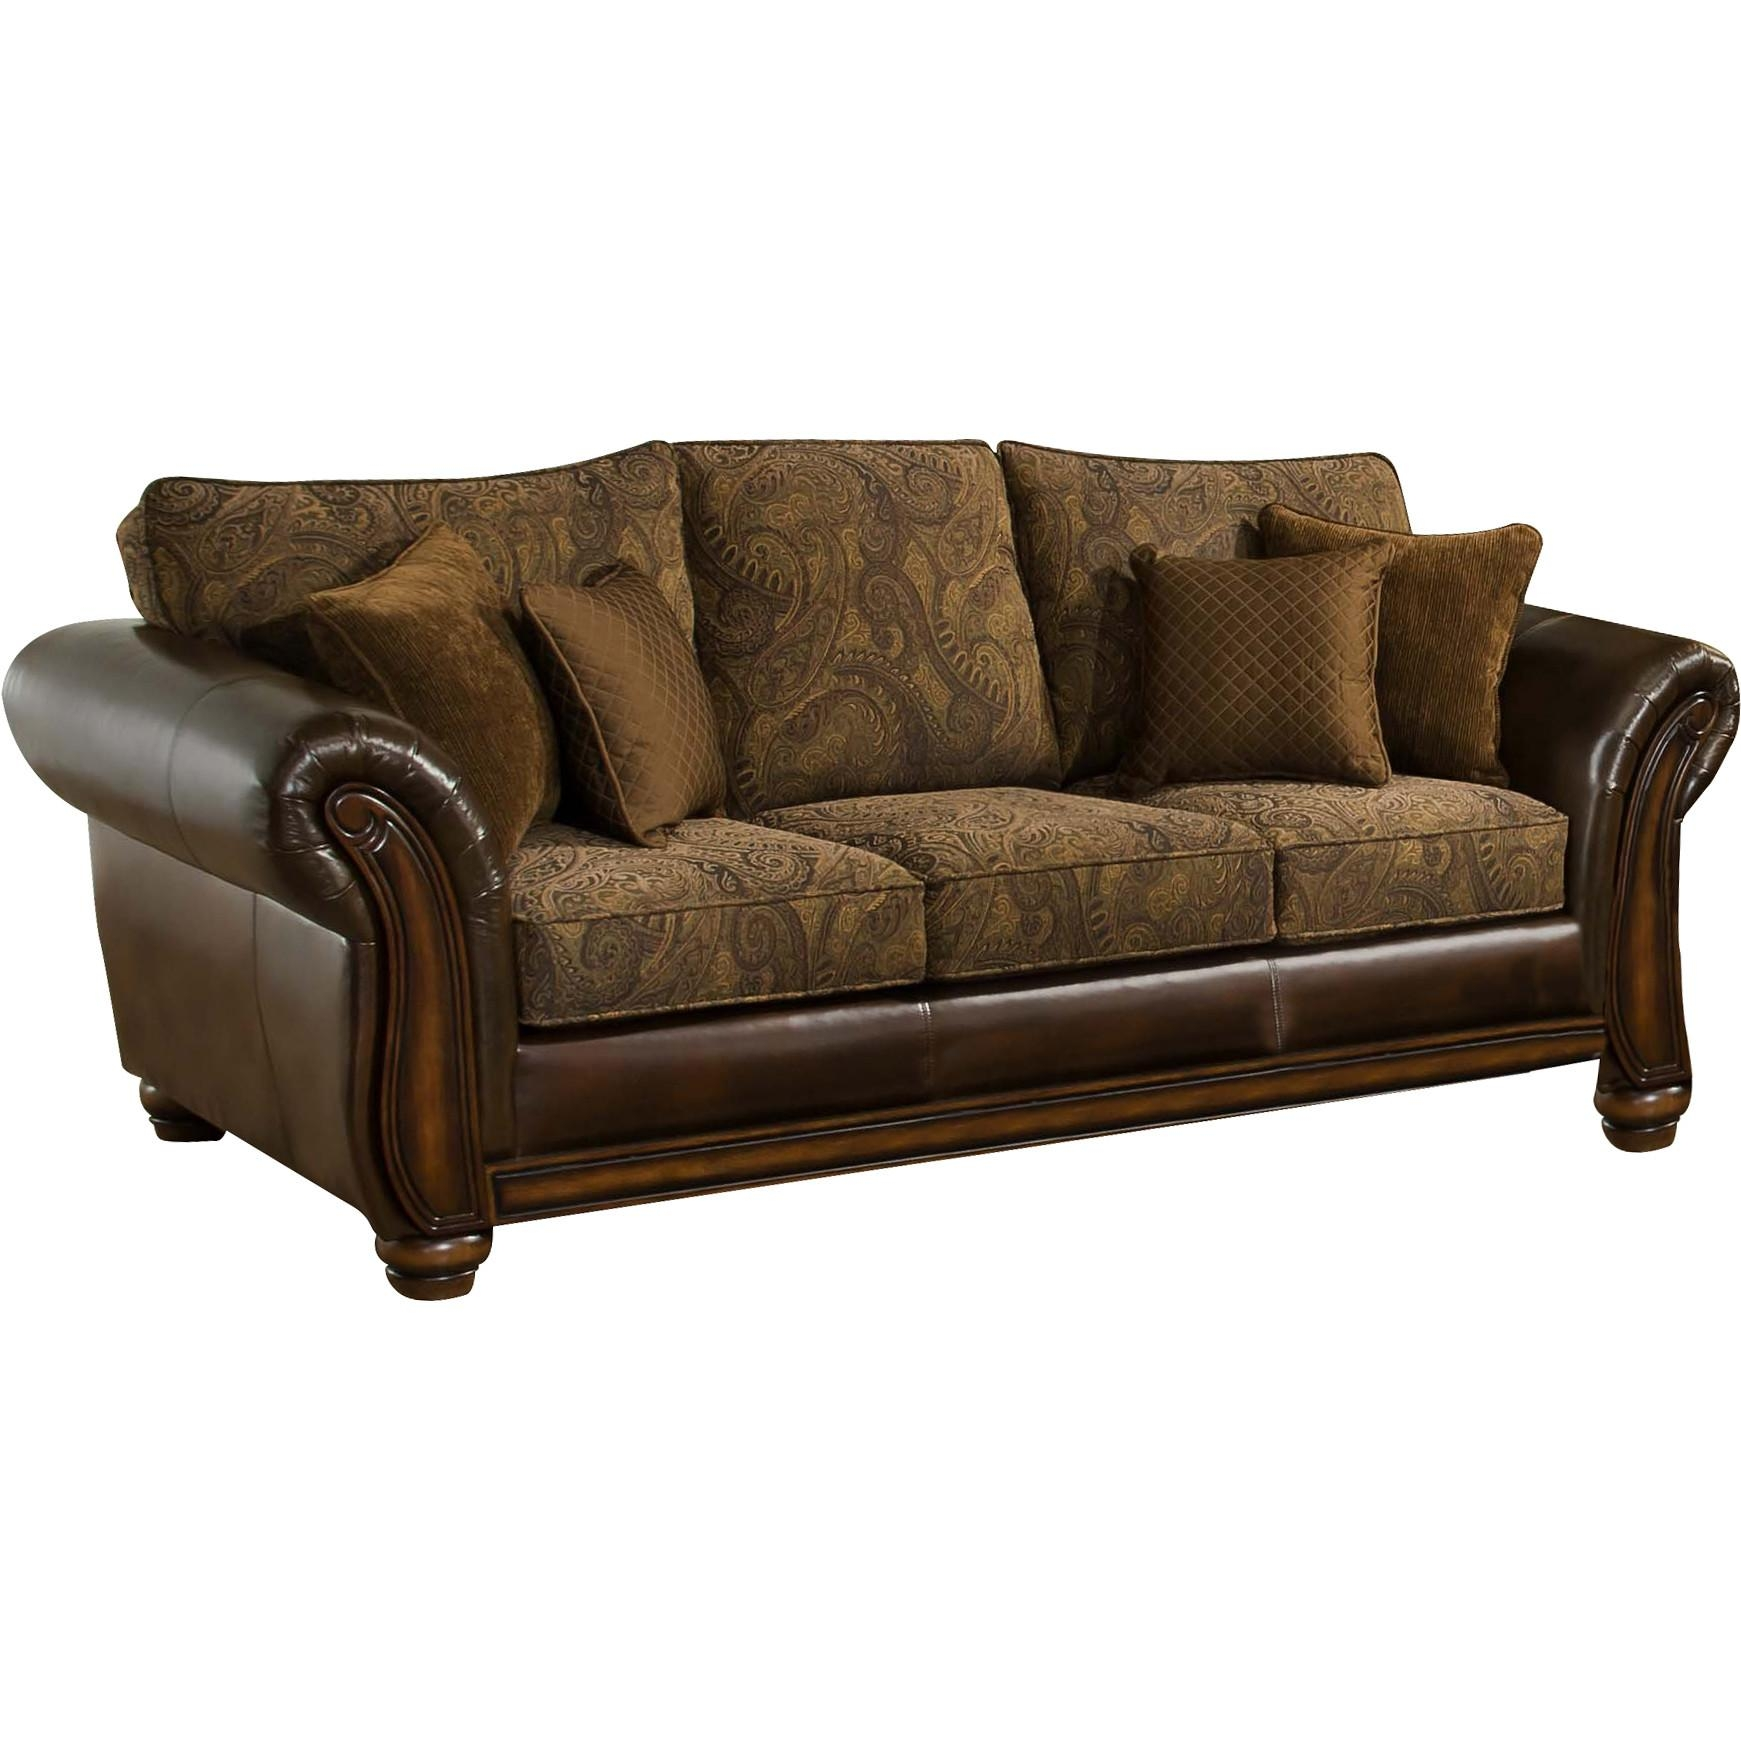 Simmons Upholstery Brown Leather Zephyr Queen Sleeper Sofa